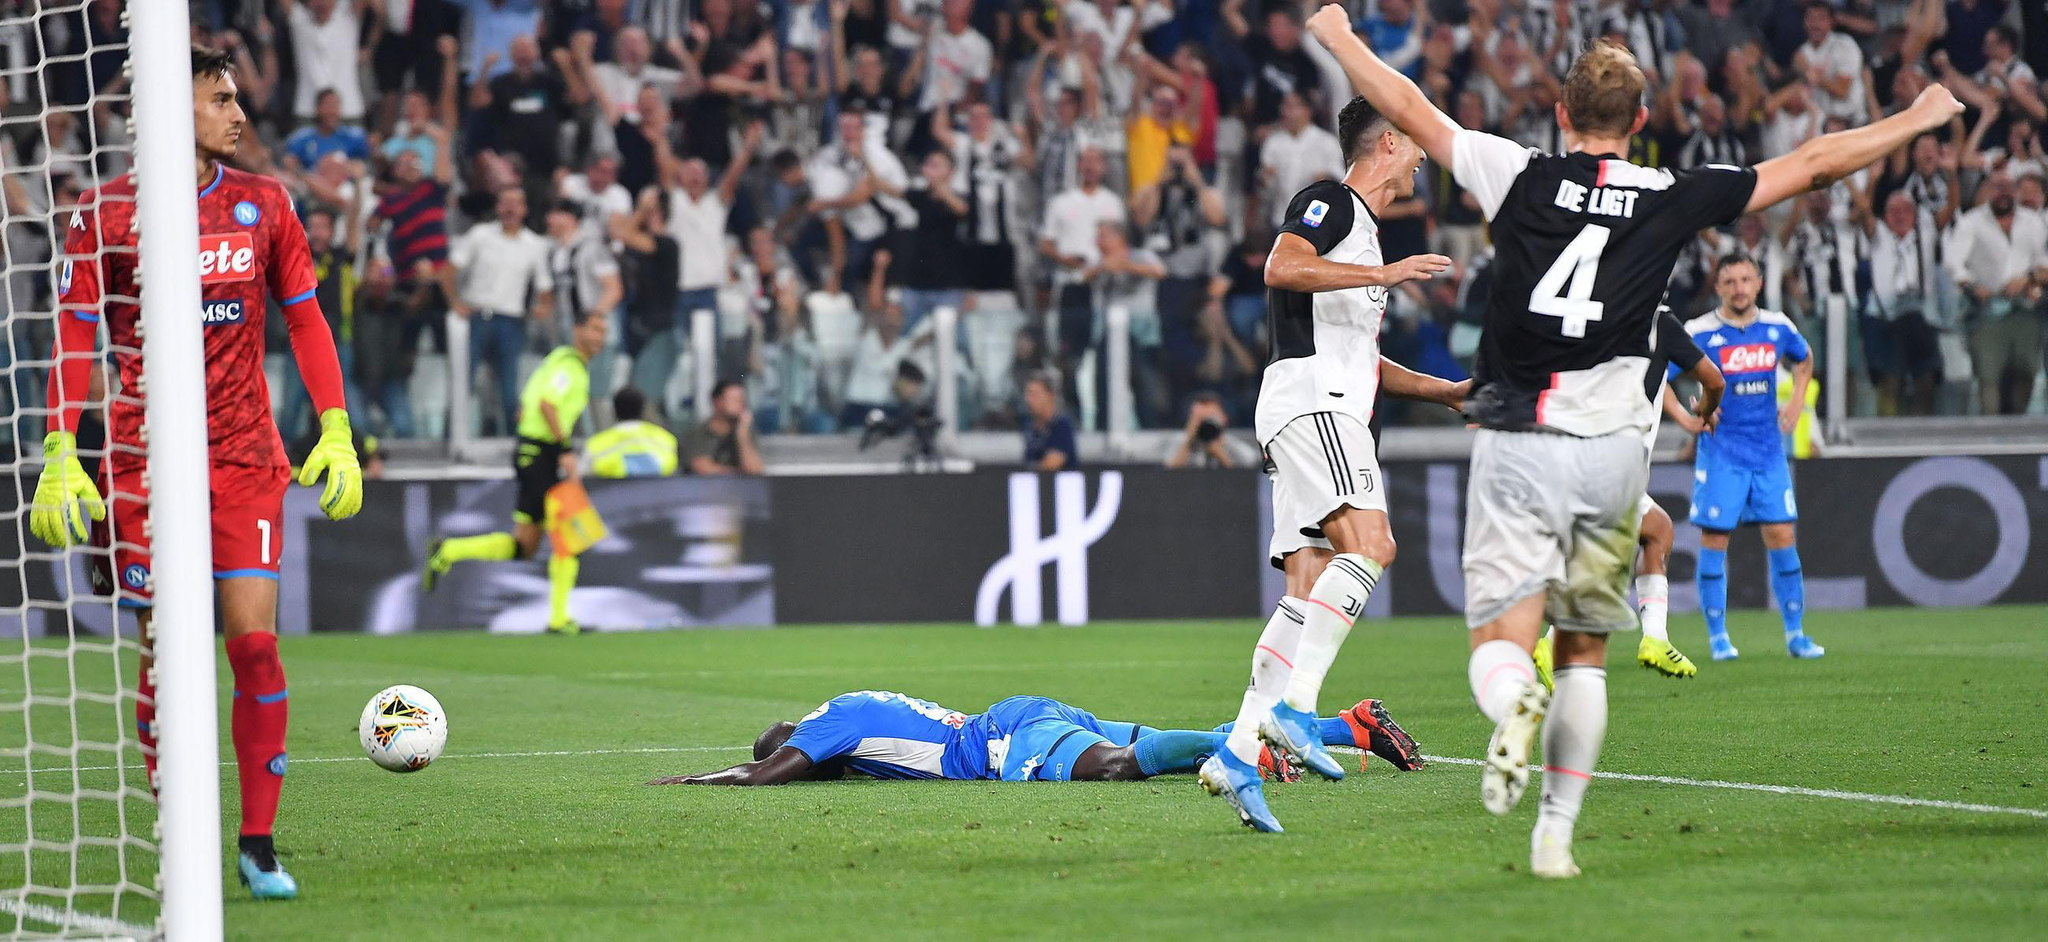 Turin (Italy), 31/08/2019.- Napolis Kalidou <HIT>Koulibaly</HIT> shows his dejection after his own goal during the Italian Serie A soccer match Juventus FC vs SSC Napoli at the Allianz Stadium in Turin, Italy, 31 August 2019. (Italia) EFE/EPA/ALESSANDRO DI MARCO